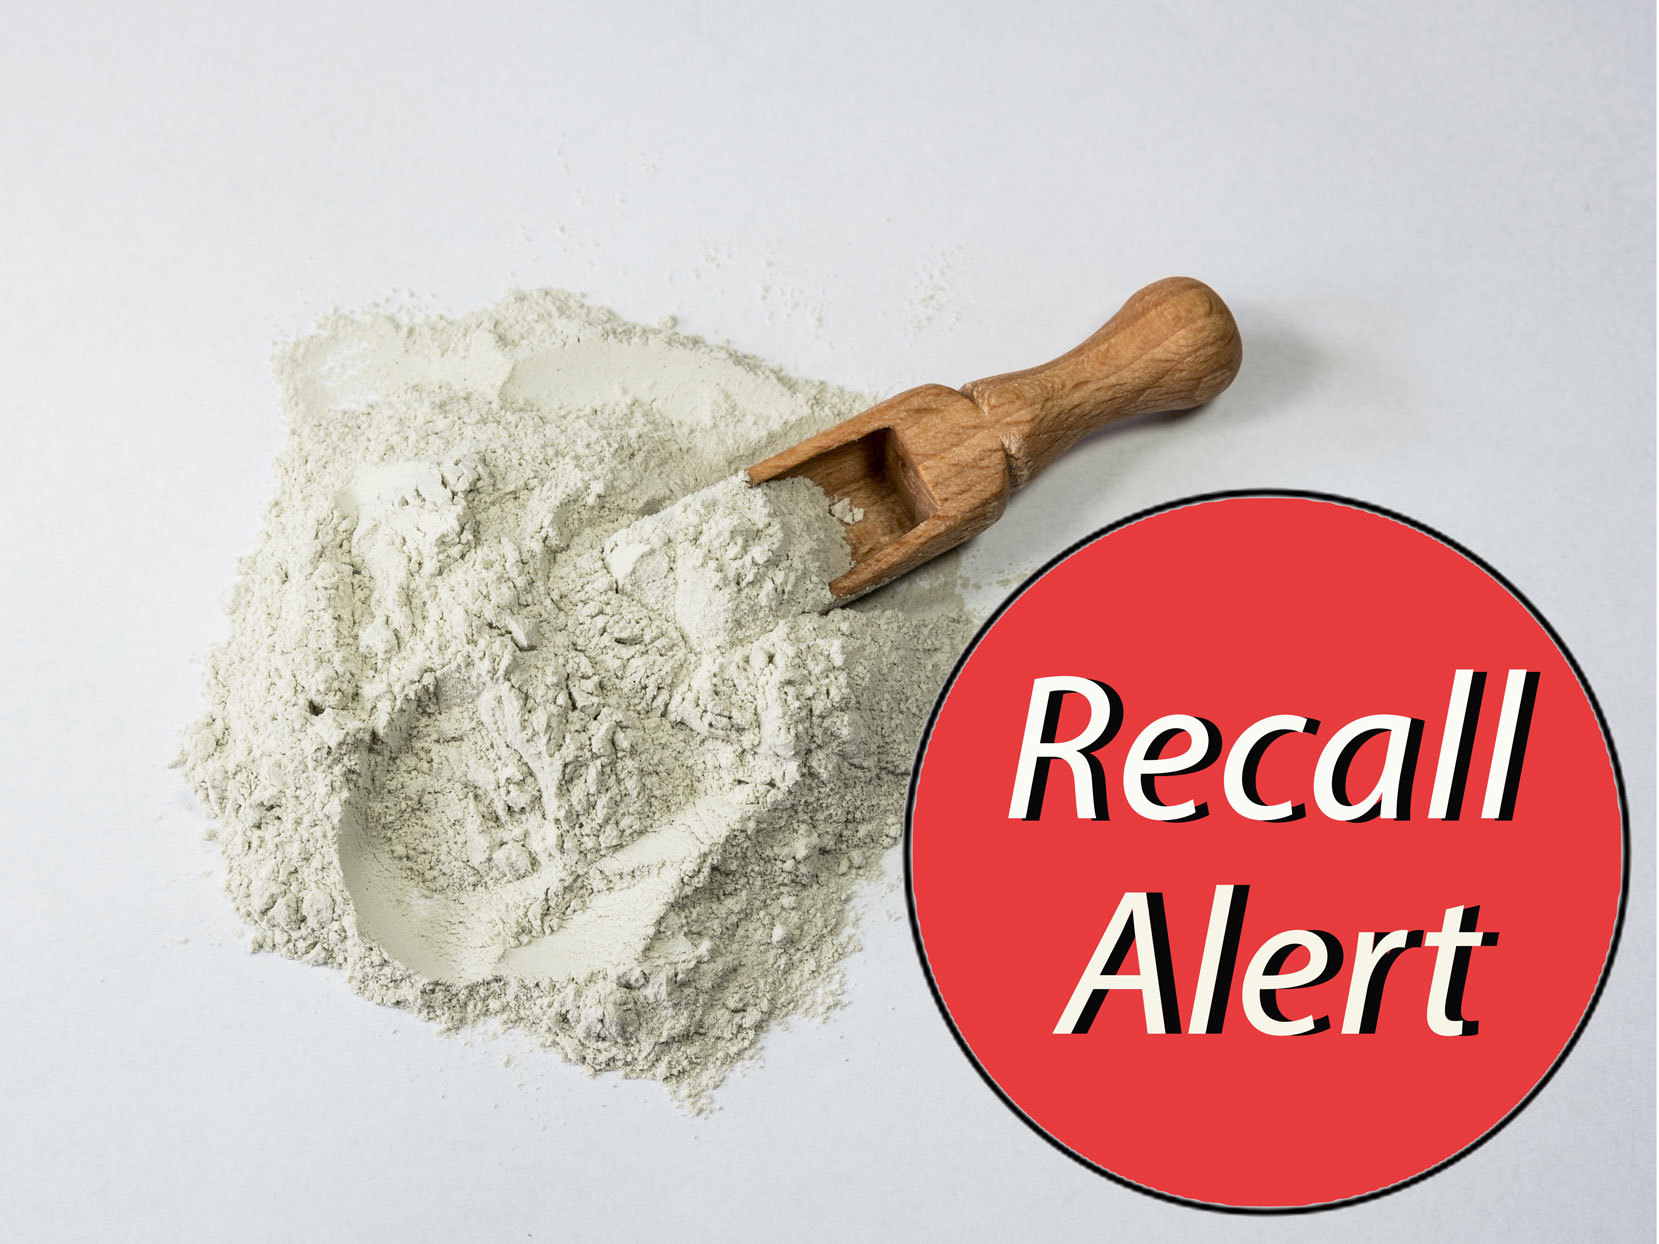 """Loose flour with red sticker that says """"Recall Alert"""""""